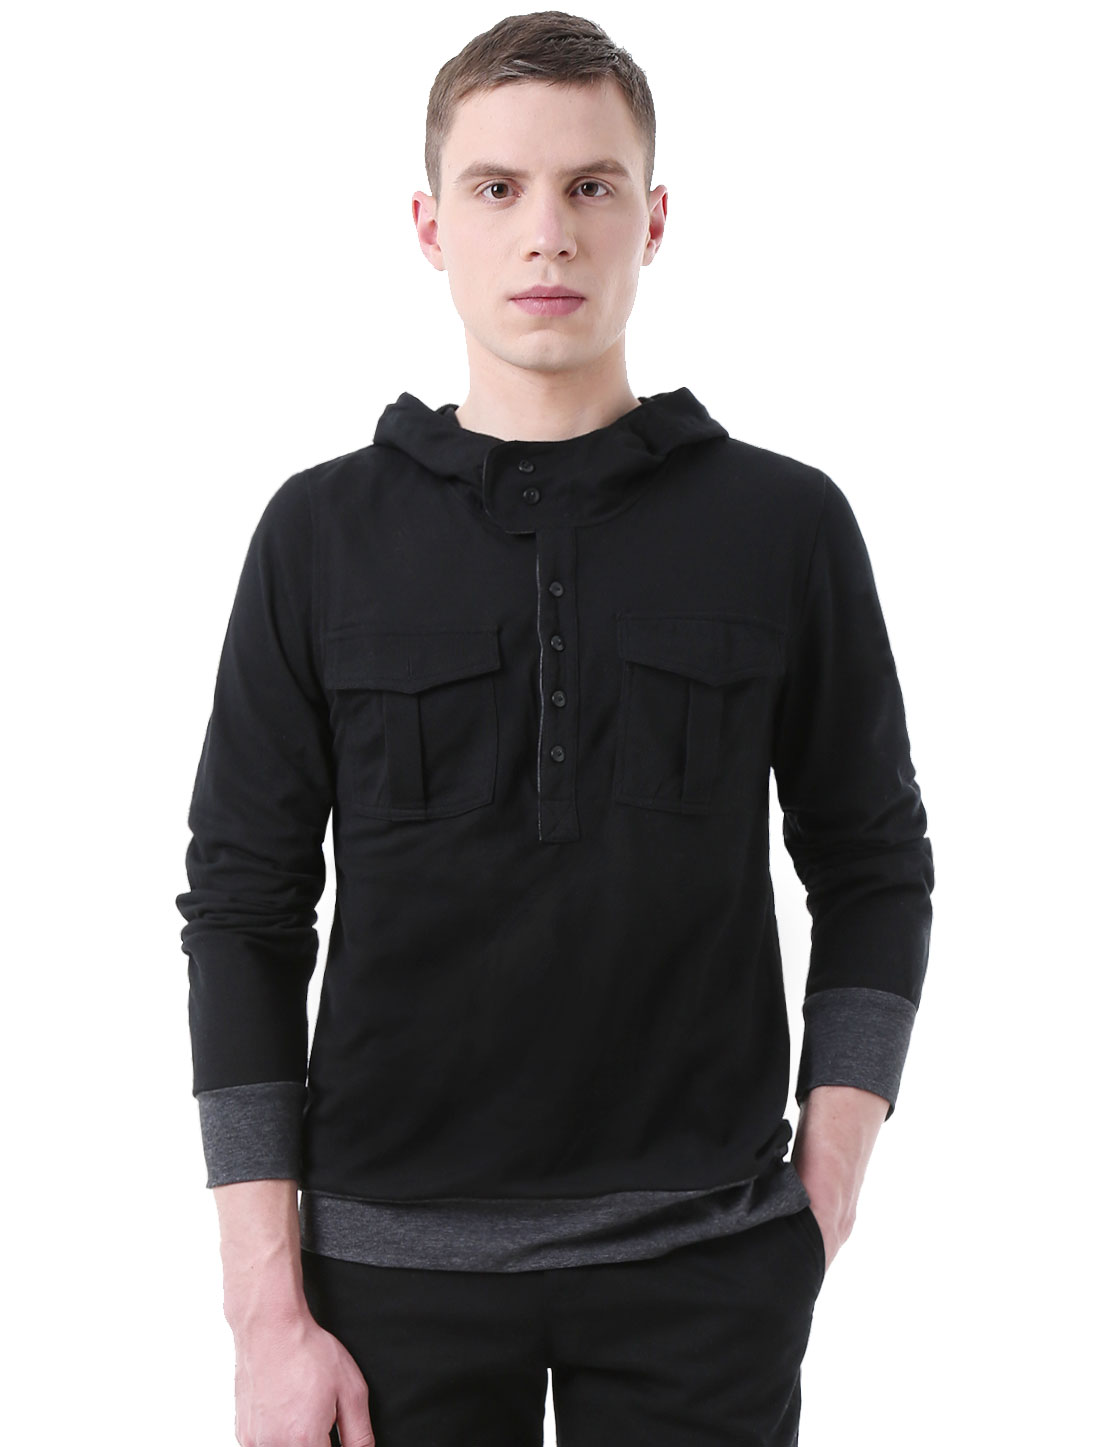 Men Patch Sleeves Placket Front Slim Fit Hooded Shirt Black L